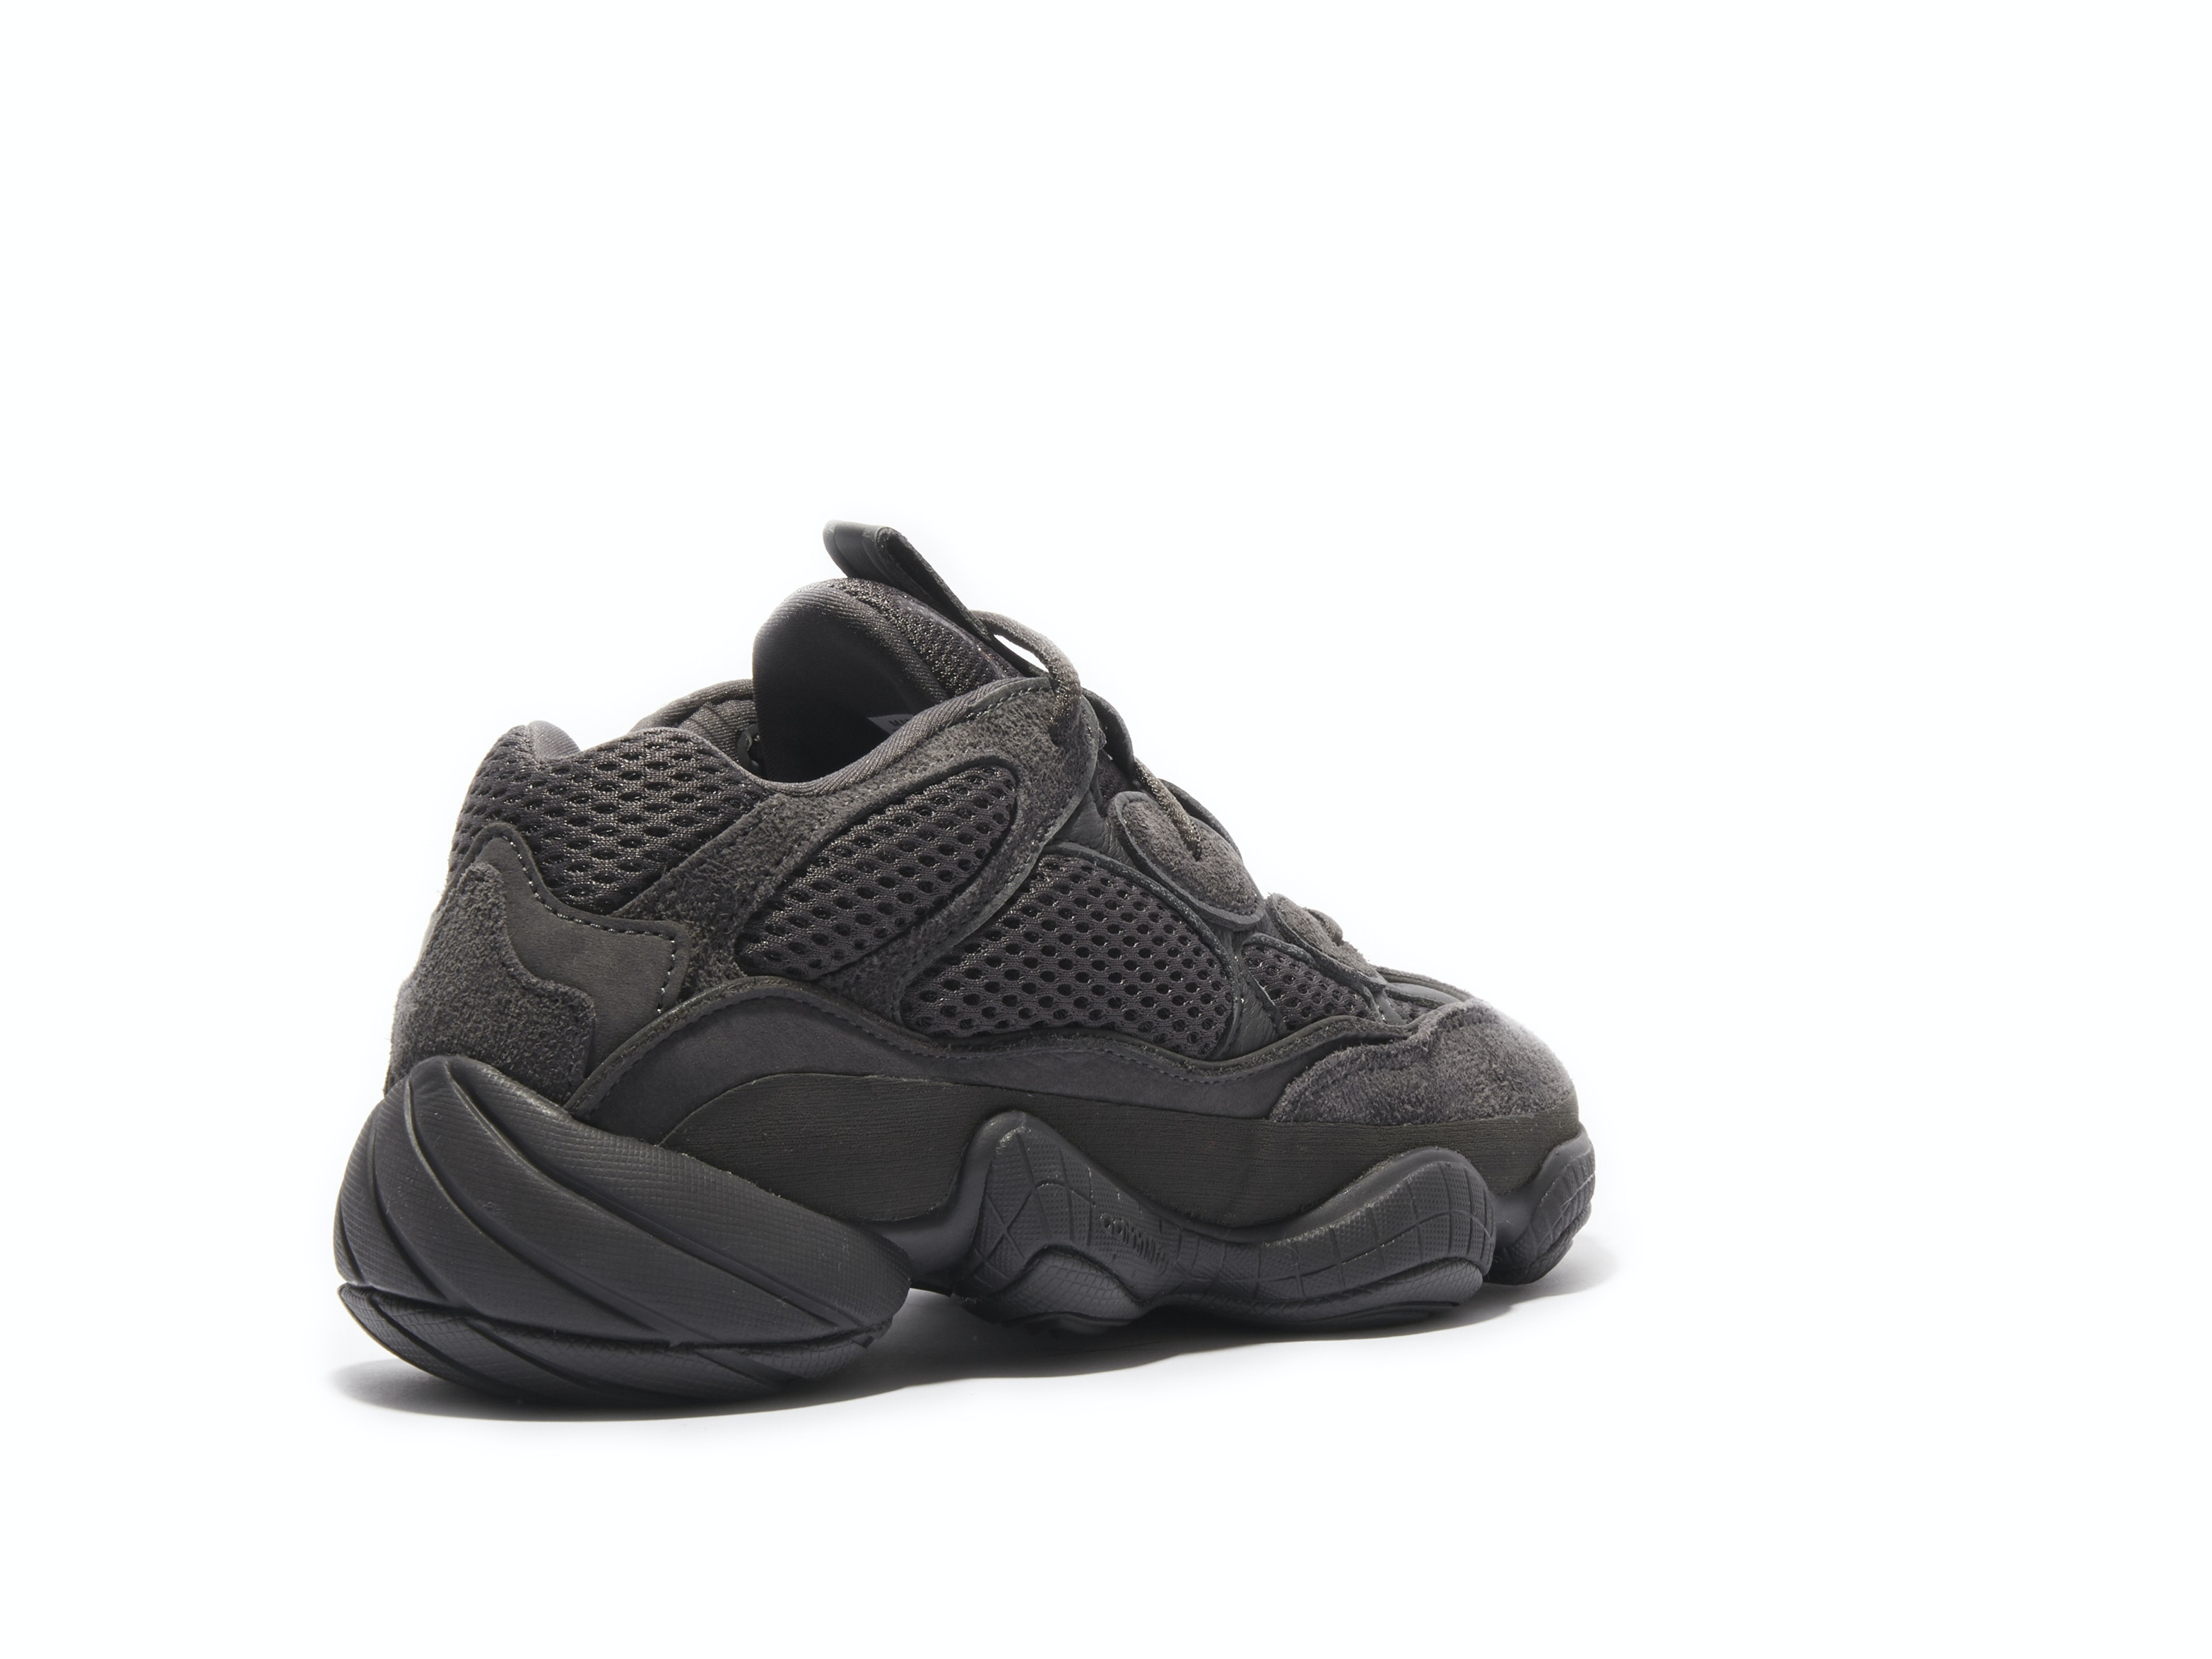 743120b1d47cf Yeezy Boost 500 Utility Black. 100% AuthenticAvg Delivery Time  1-2 days.  Adidas   F36640